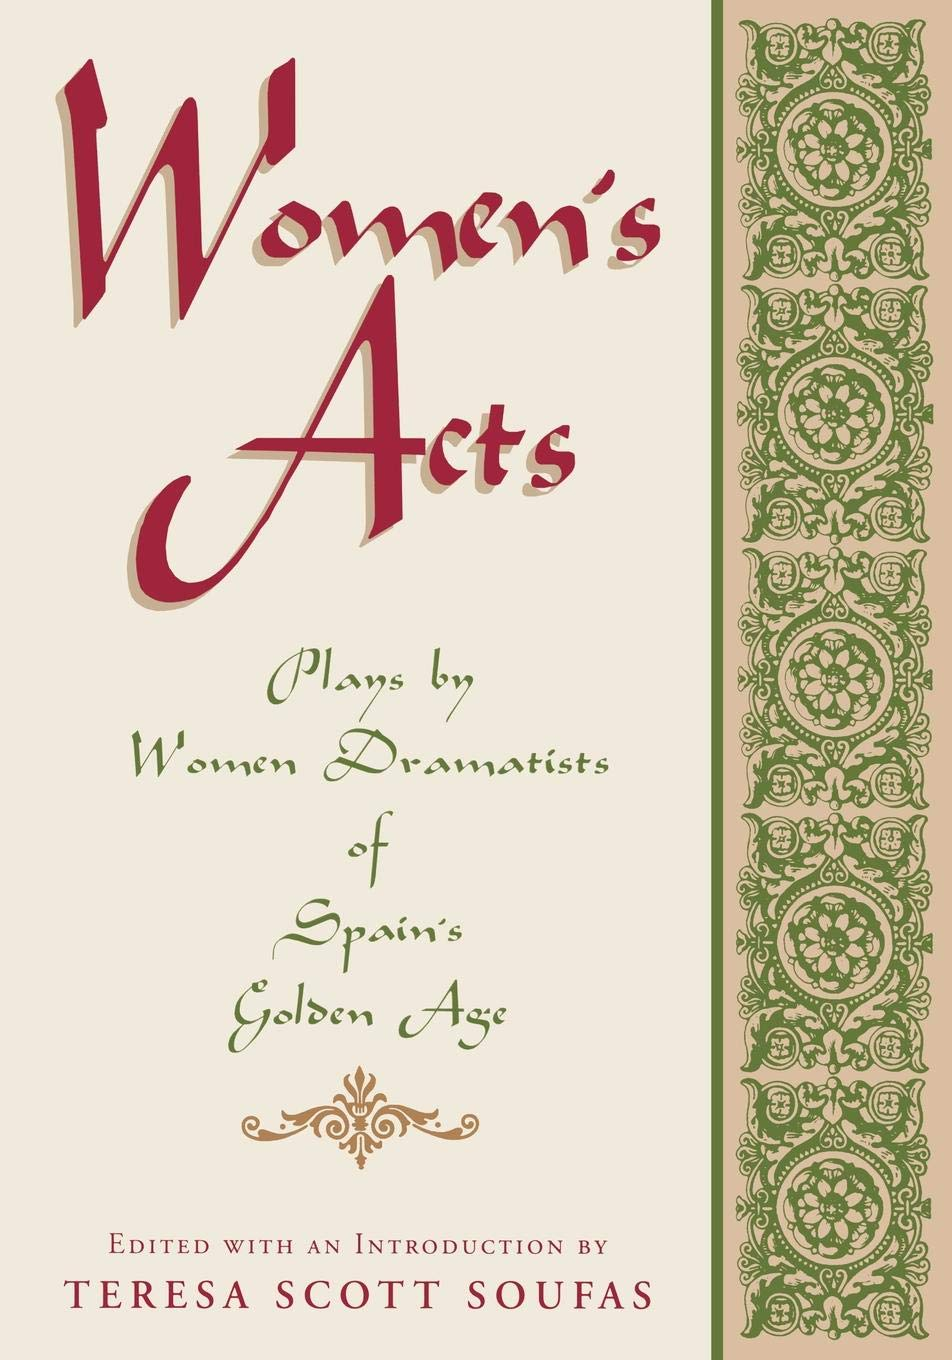 Women's Acts: Plays by Women Dramatists of Spain's Golden Age (Inglés) Tapa blanda – 29 nov 1996 Teresa Scott Soufas 0813108896 HOU7151LB02082011H0019 1500-1700